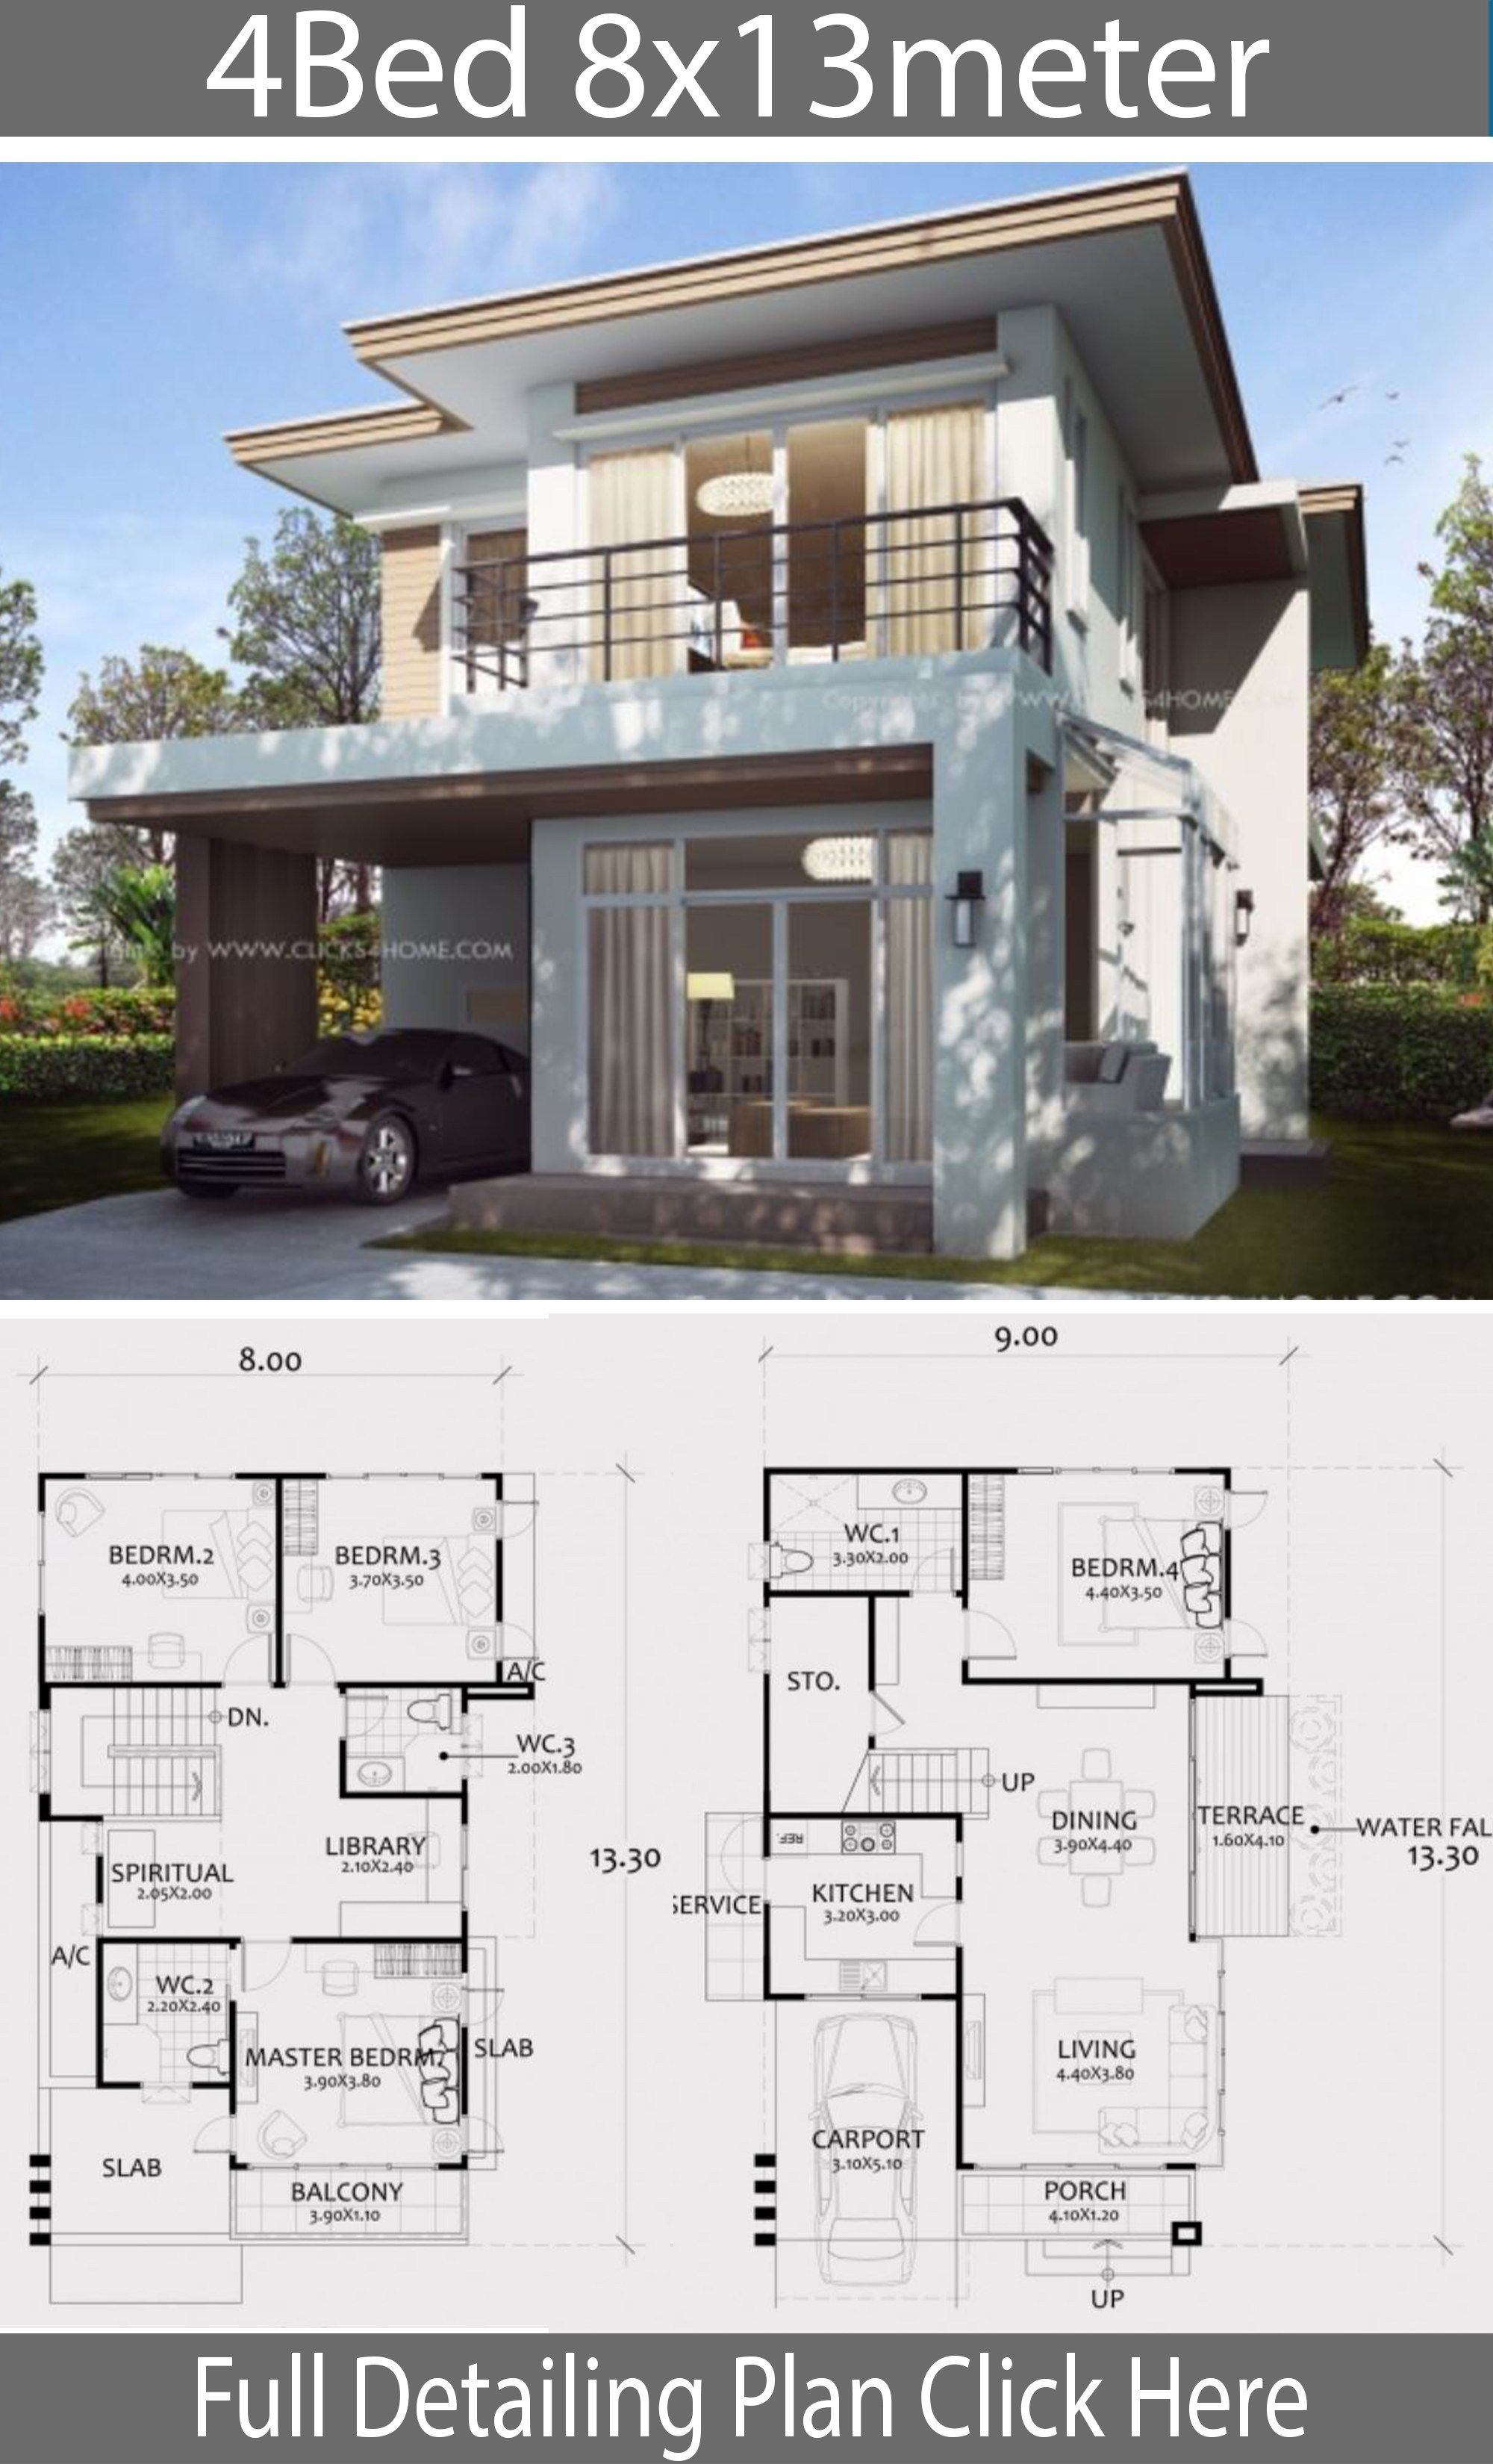 Home Design Plan 8x13m With 4 Bedrooms Home Design With Plan Duplex House Design Architectural House Plans Model House Plan